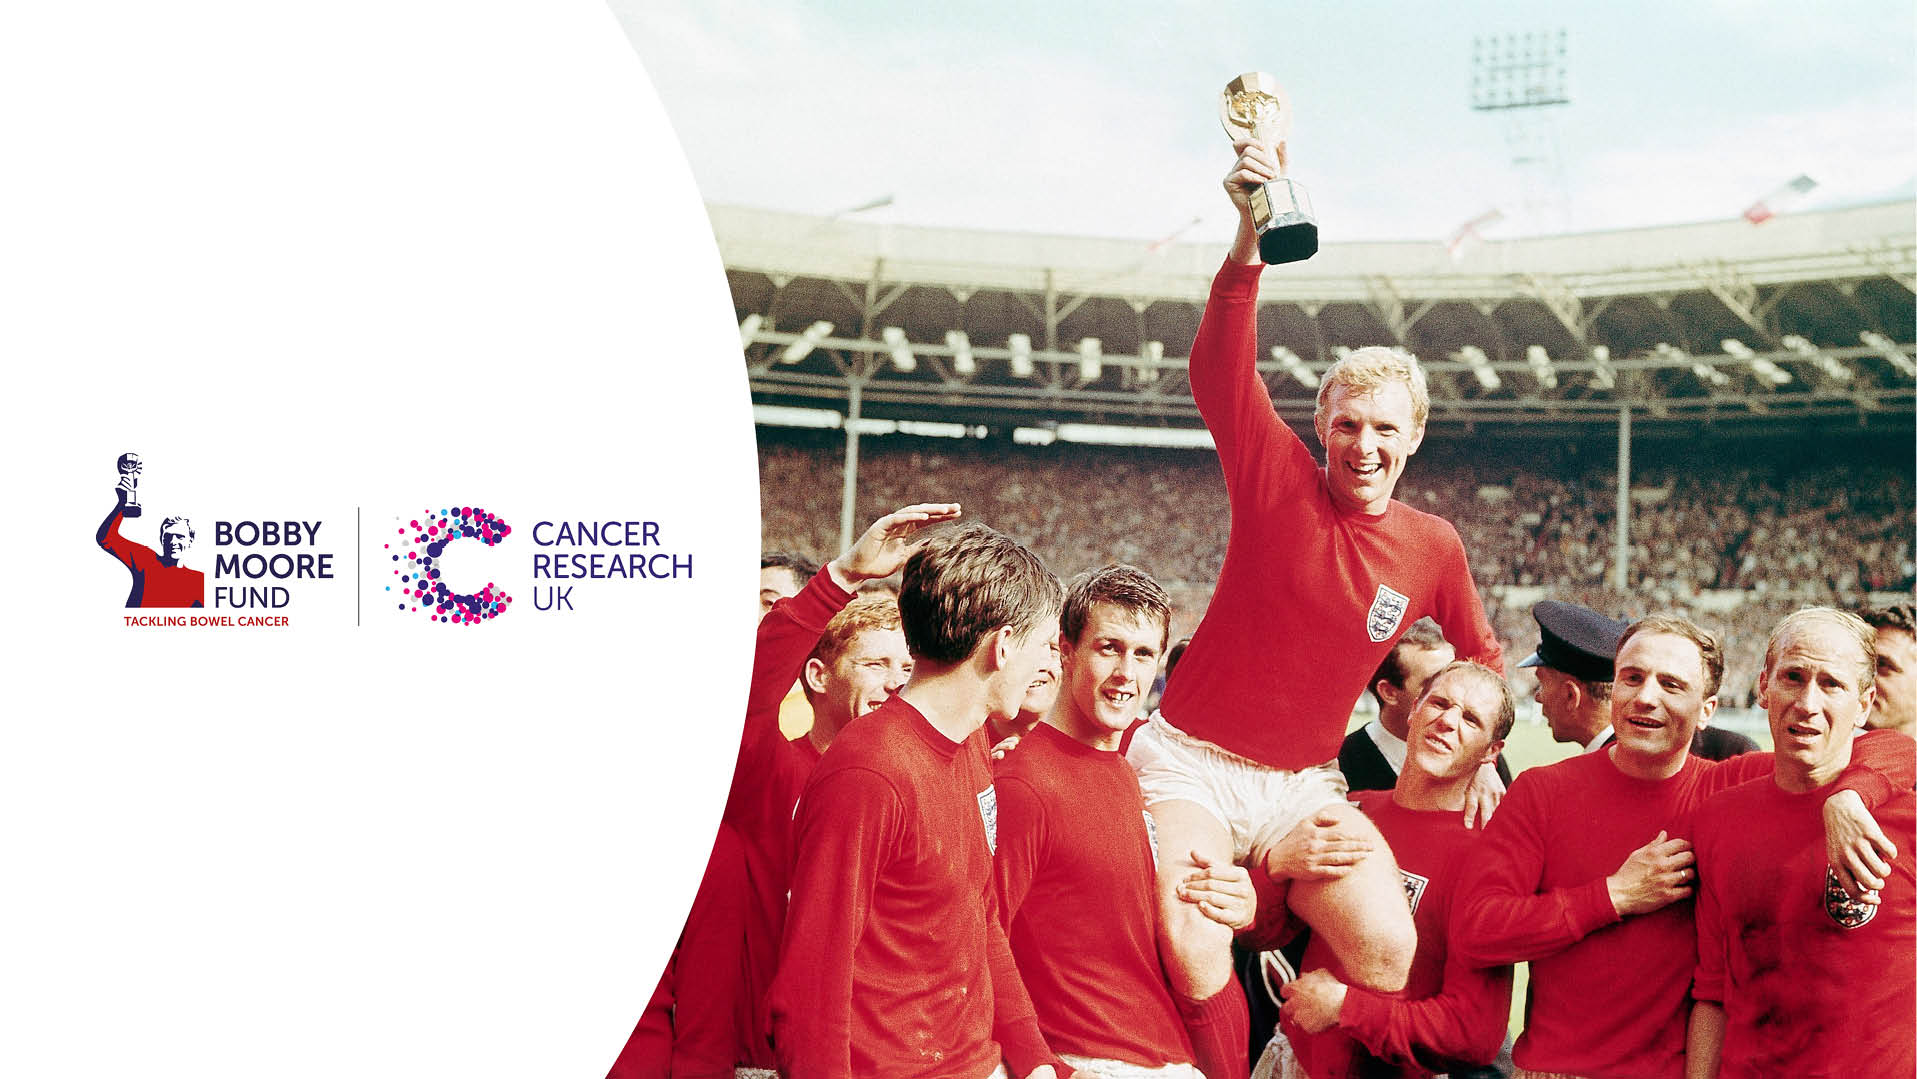 CRUK and Bobby Moore Fund logos alongside image of Bobby Moore lifting a trophy